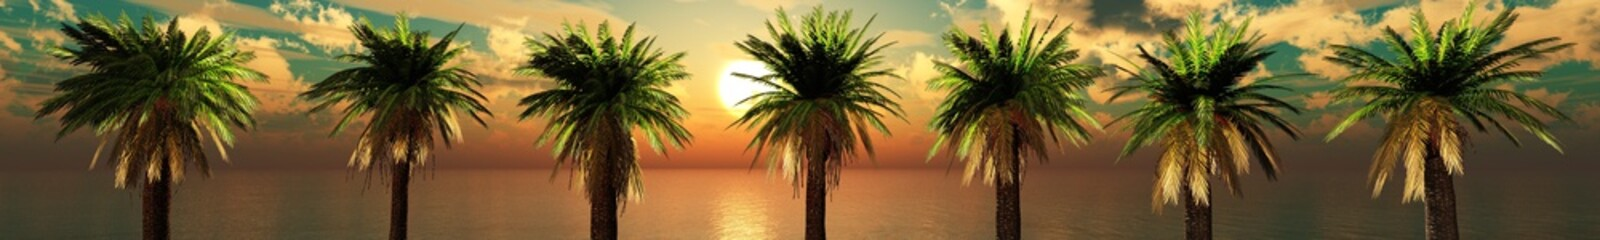 palm trees in a row, Panorama of the sea coast with trees